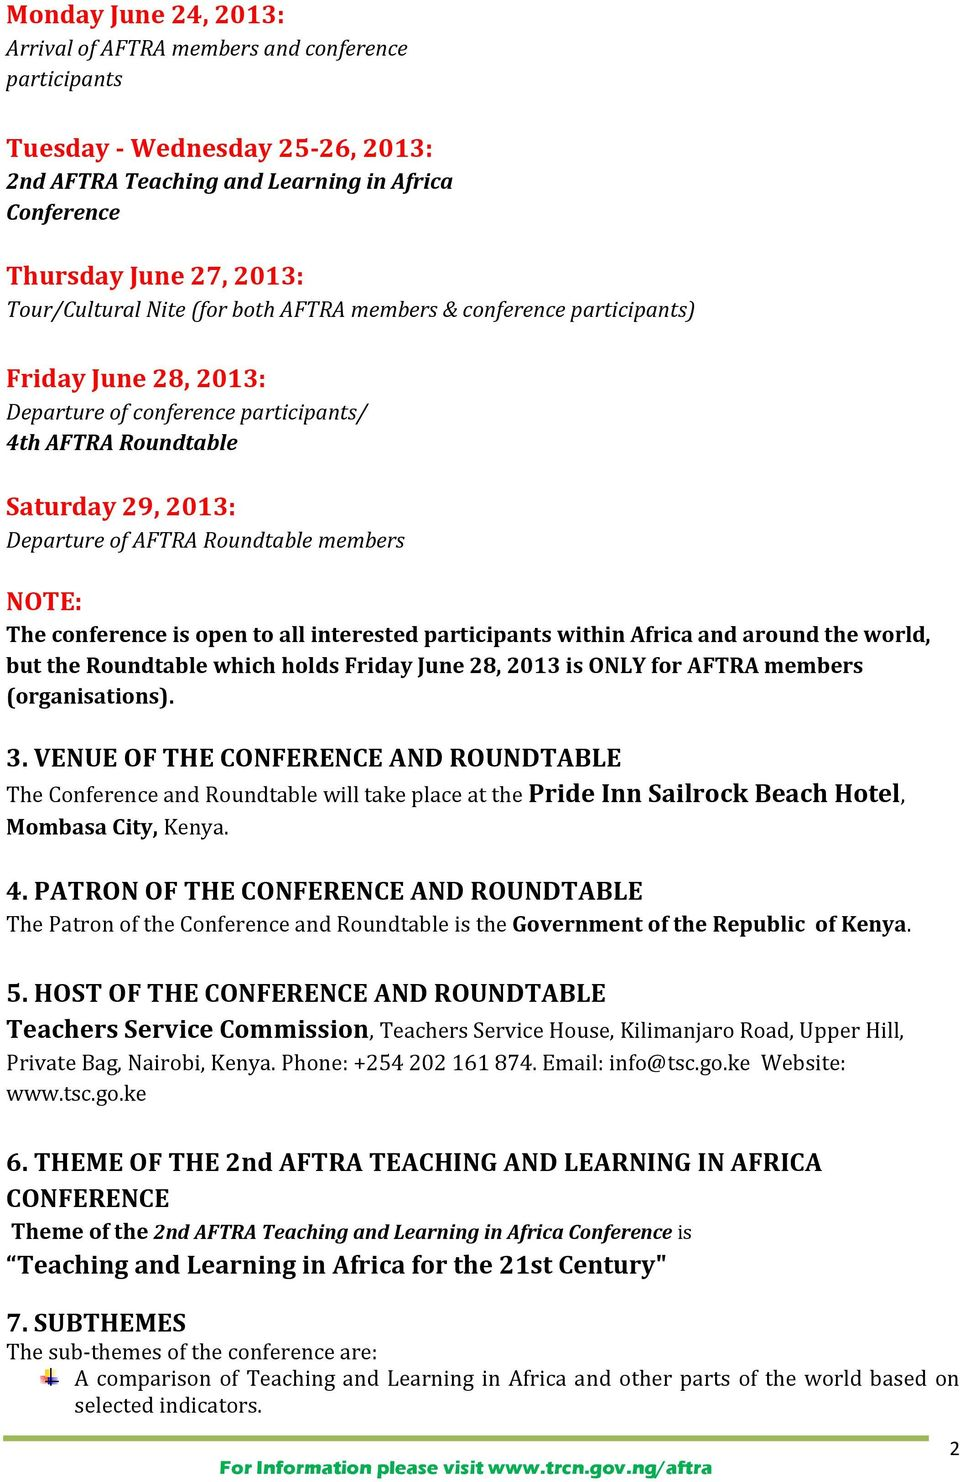 The conference is open to all interested participants within Africa and around the world, but the Roundtable which holds Friday June 28, 2013 is ONLY for AFTRA members (organisations). 3.